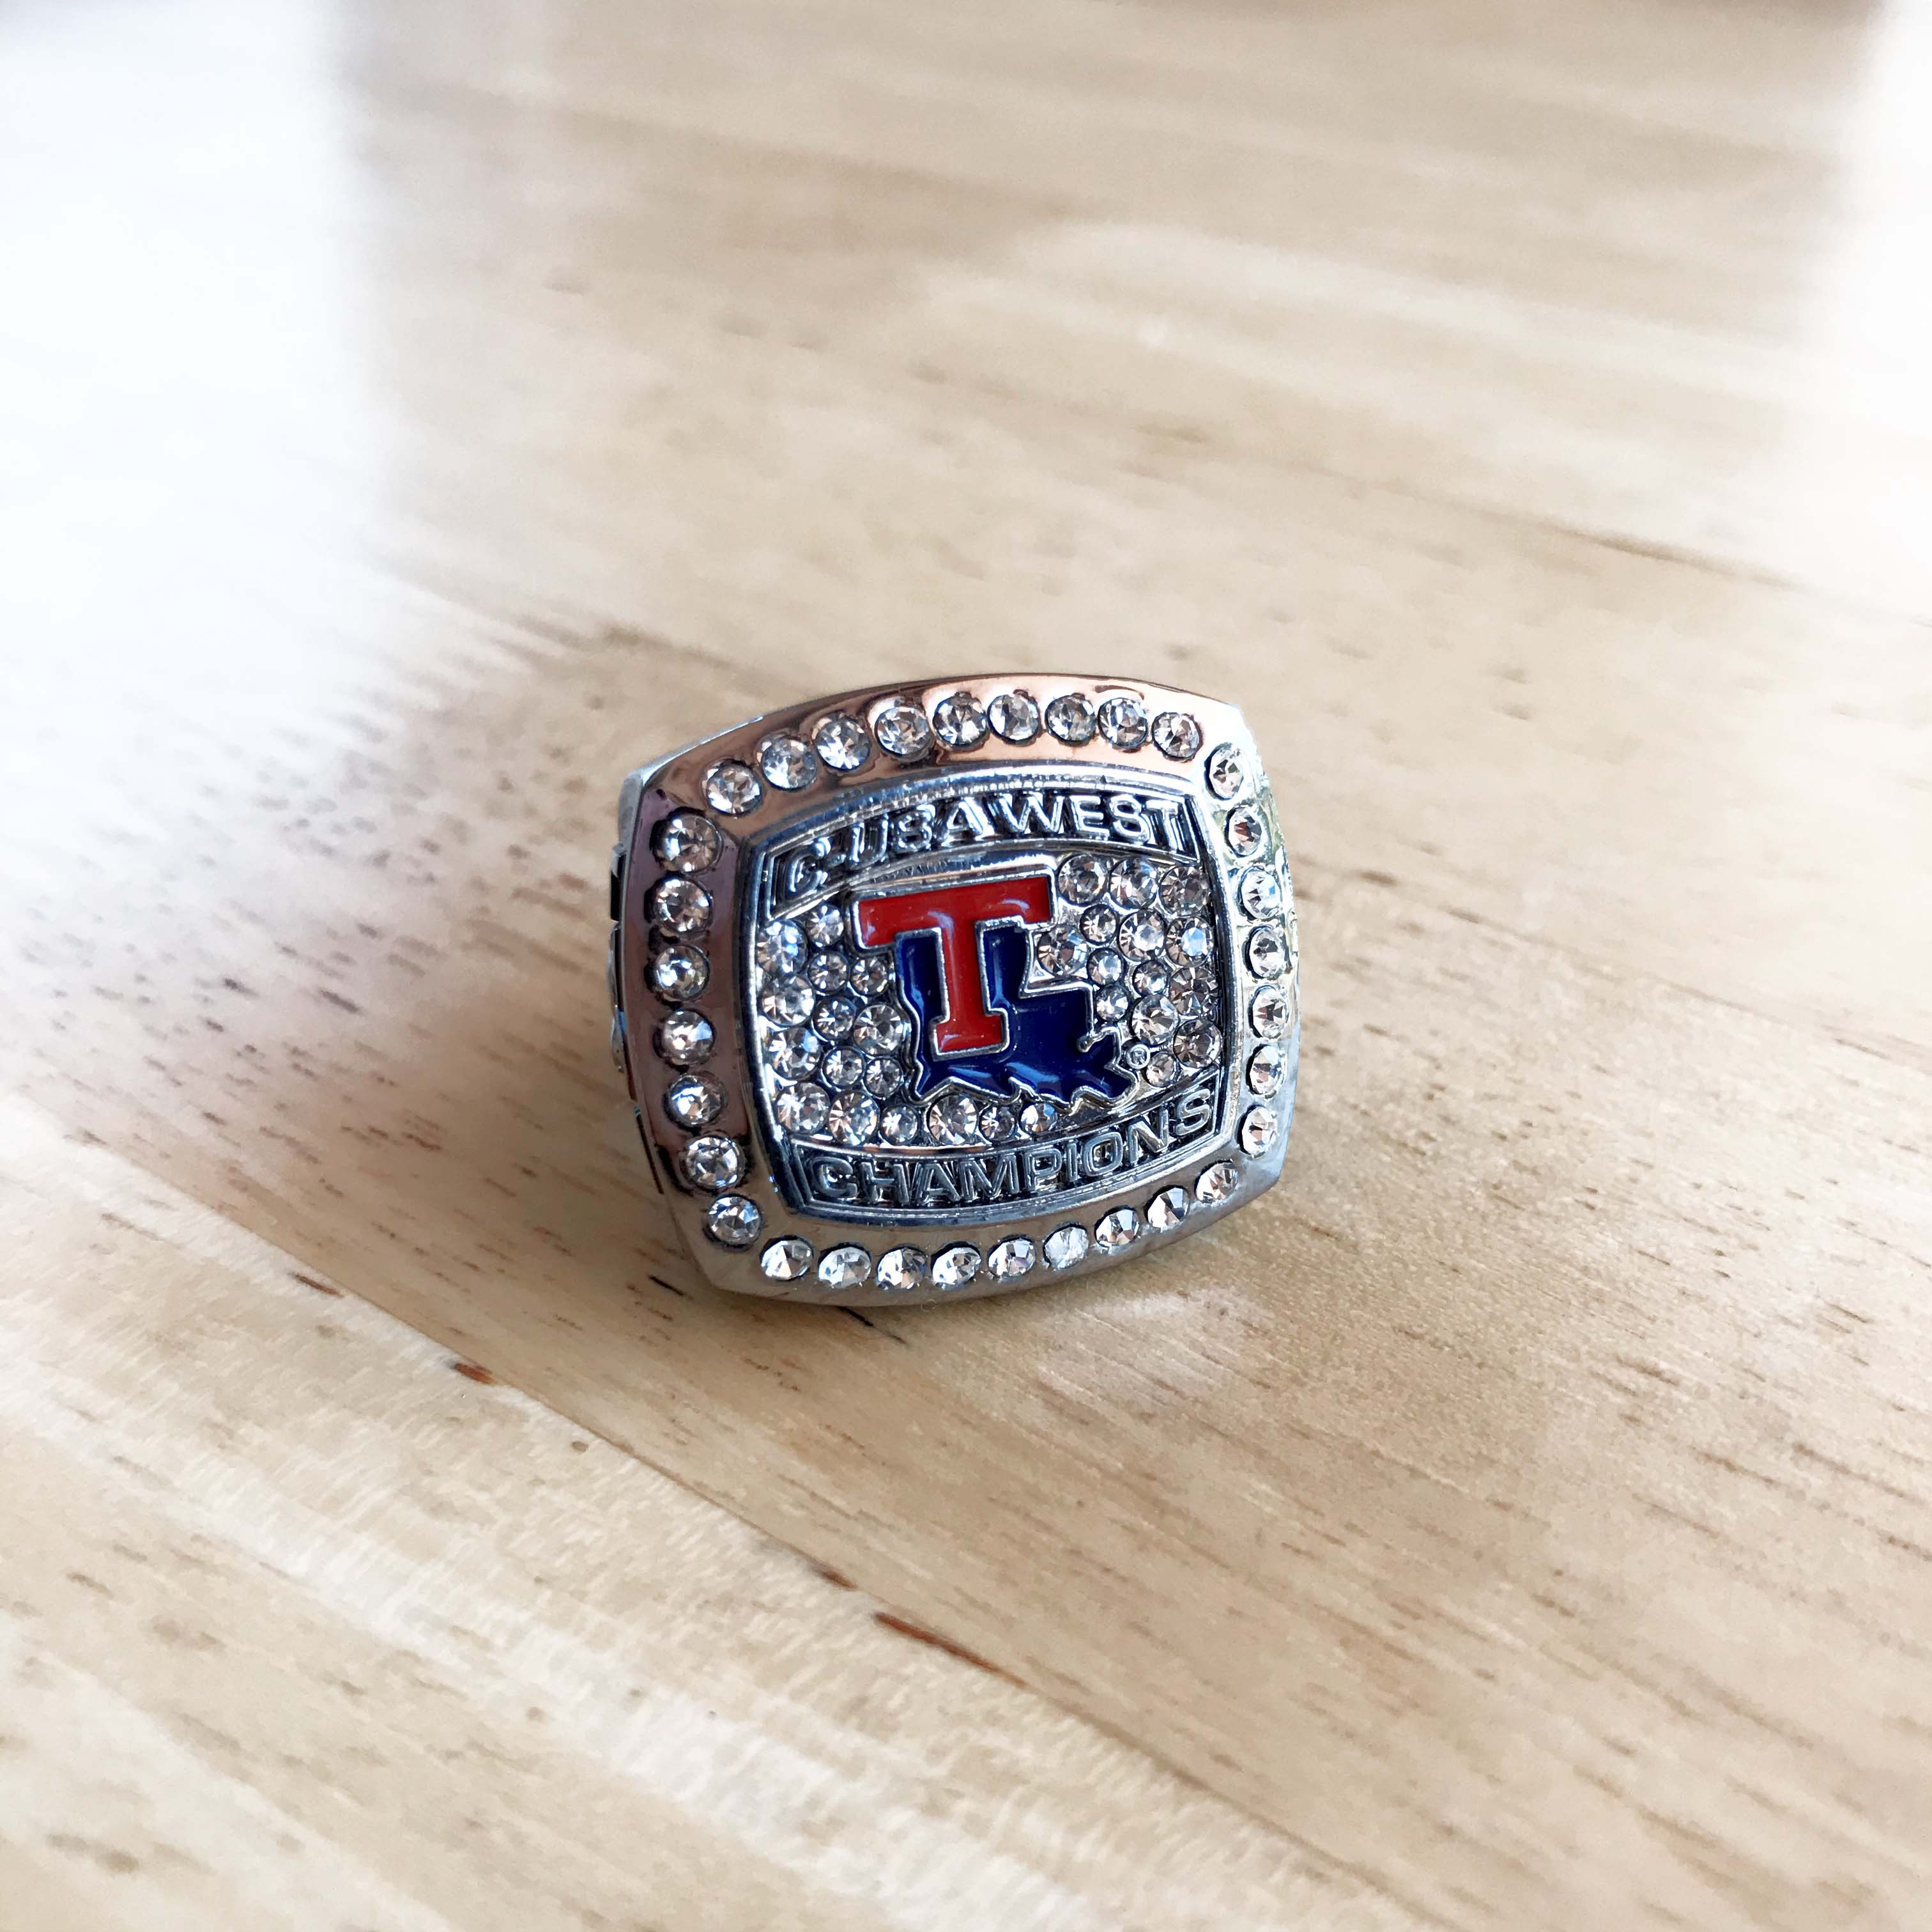 T Texas school ring.